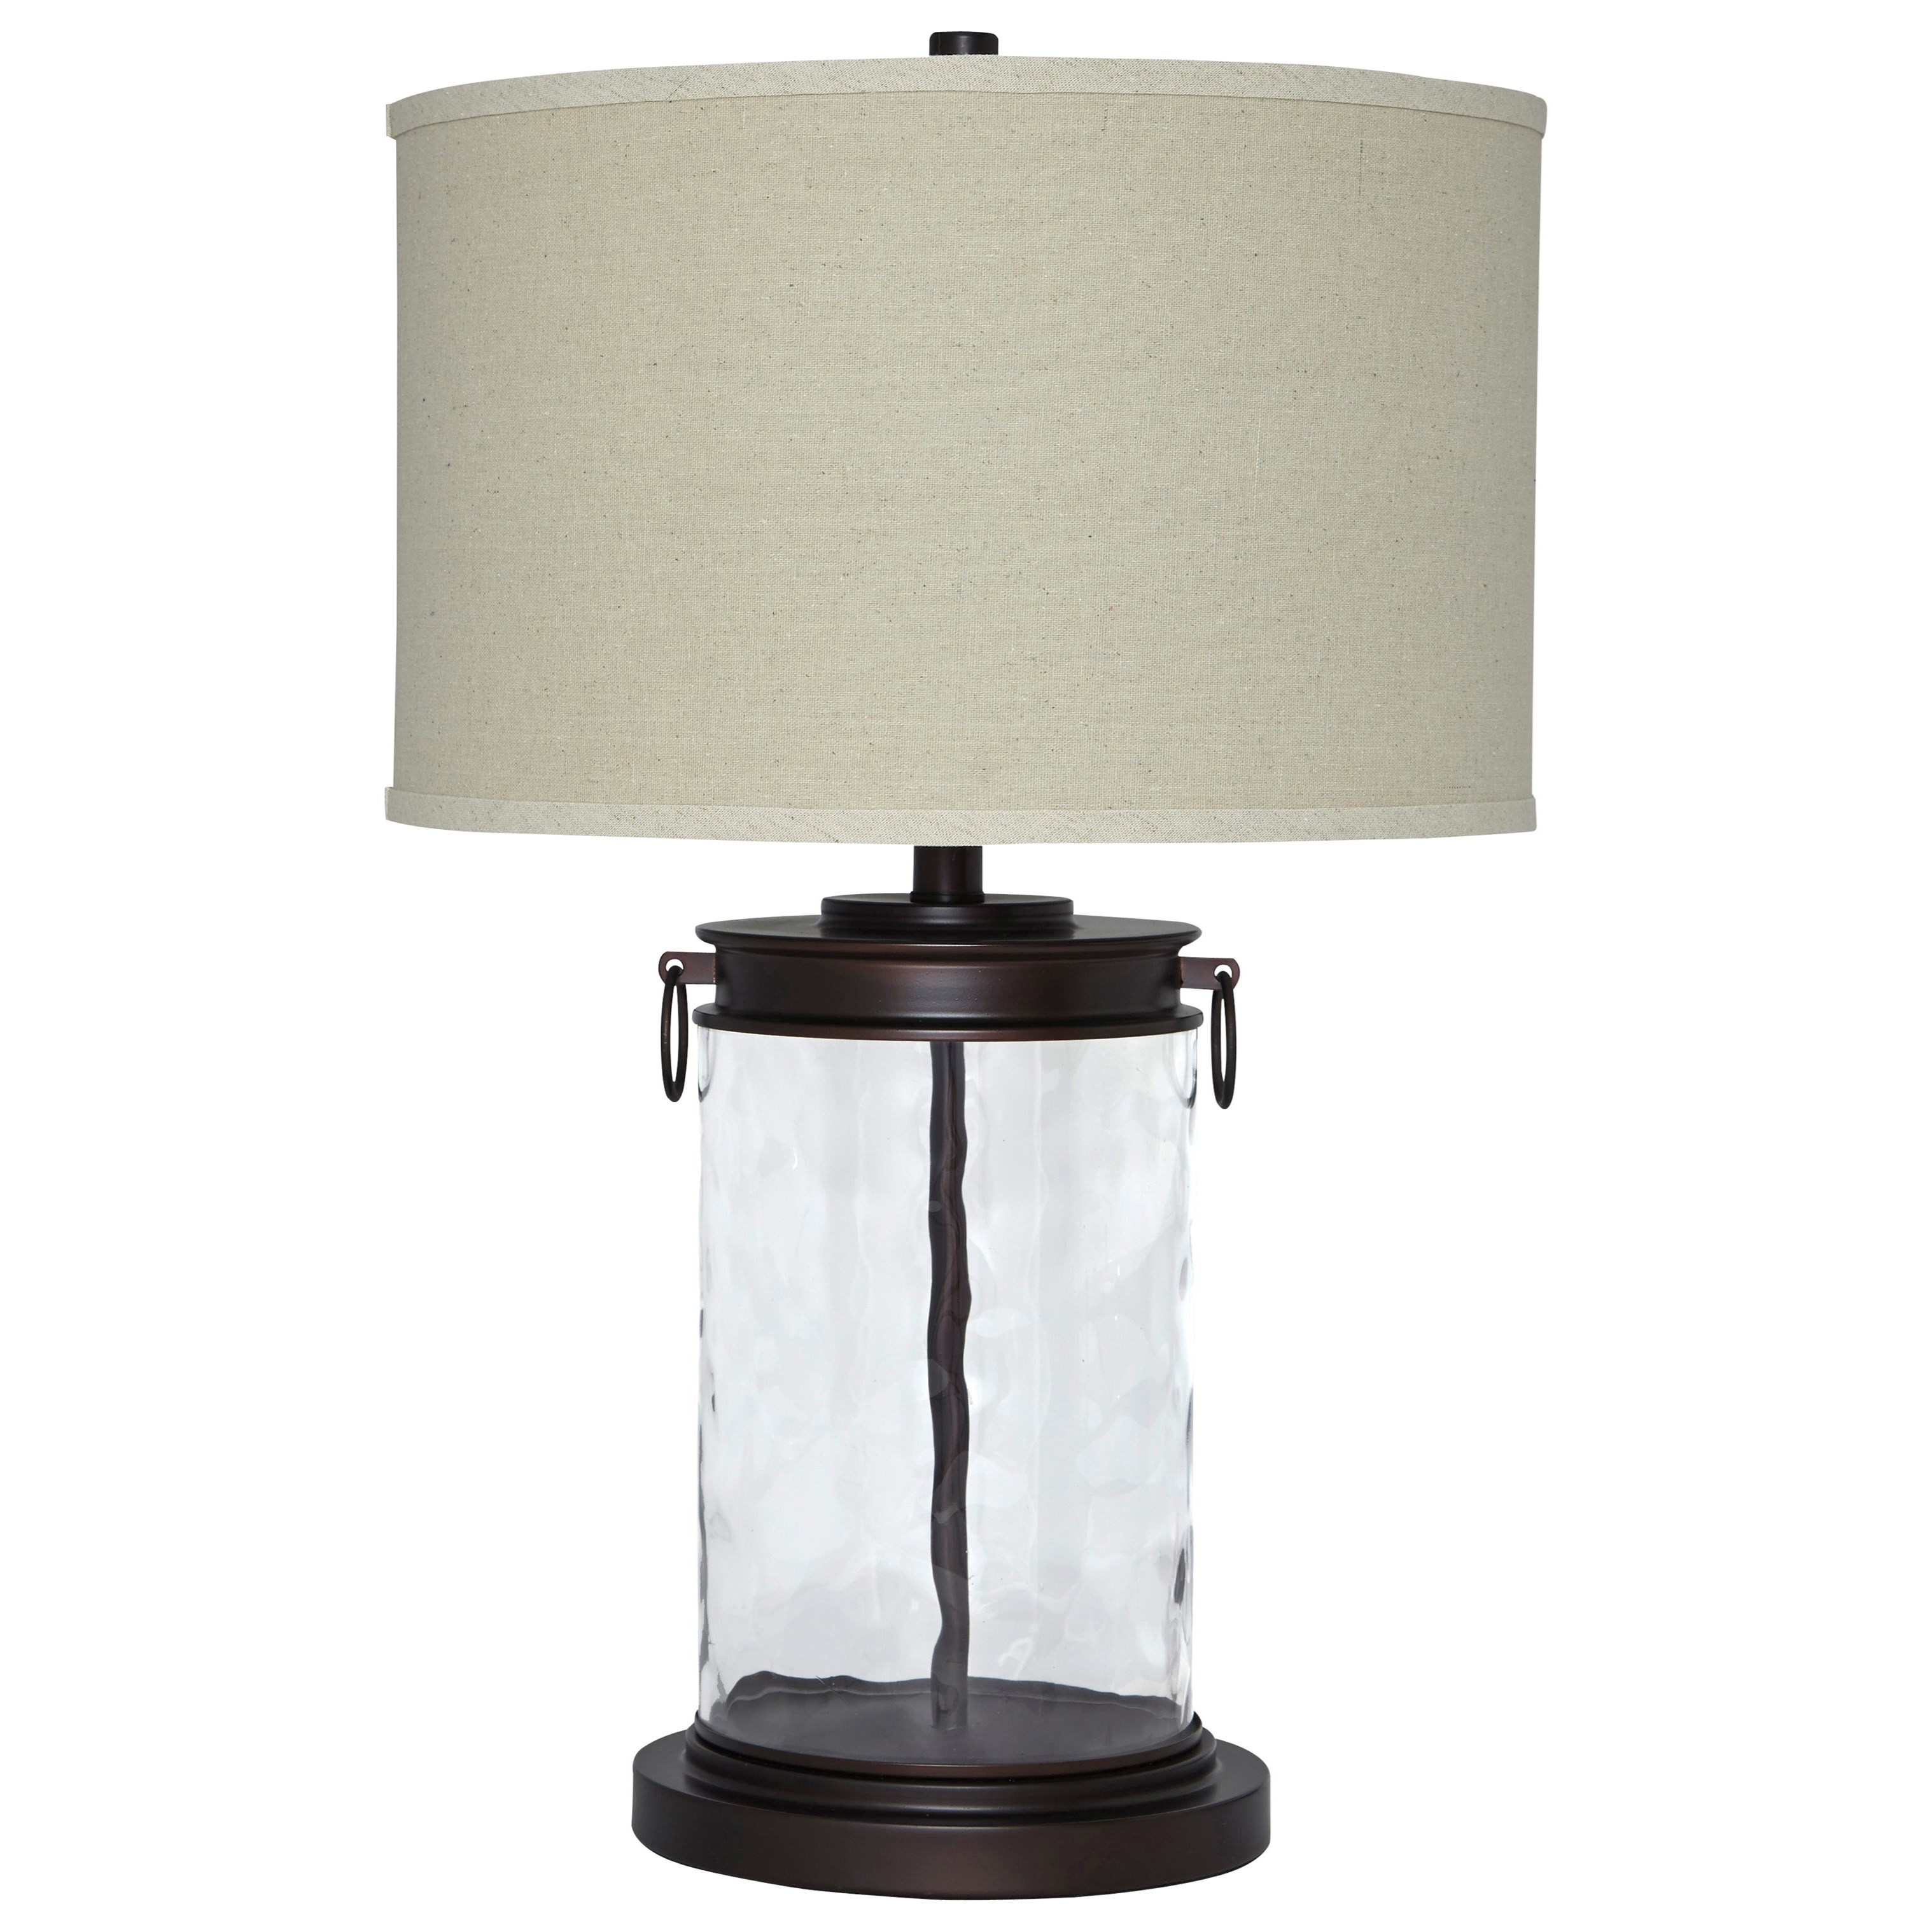 Lamps - Vintage Style Tailynn Clear/Bronze Finish Glass Table Lamp by Signature at Walker's Furniture